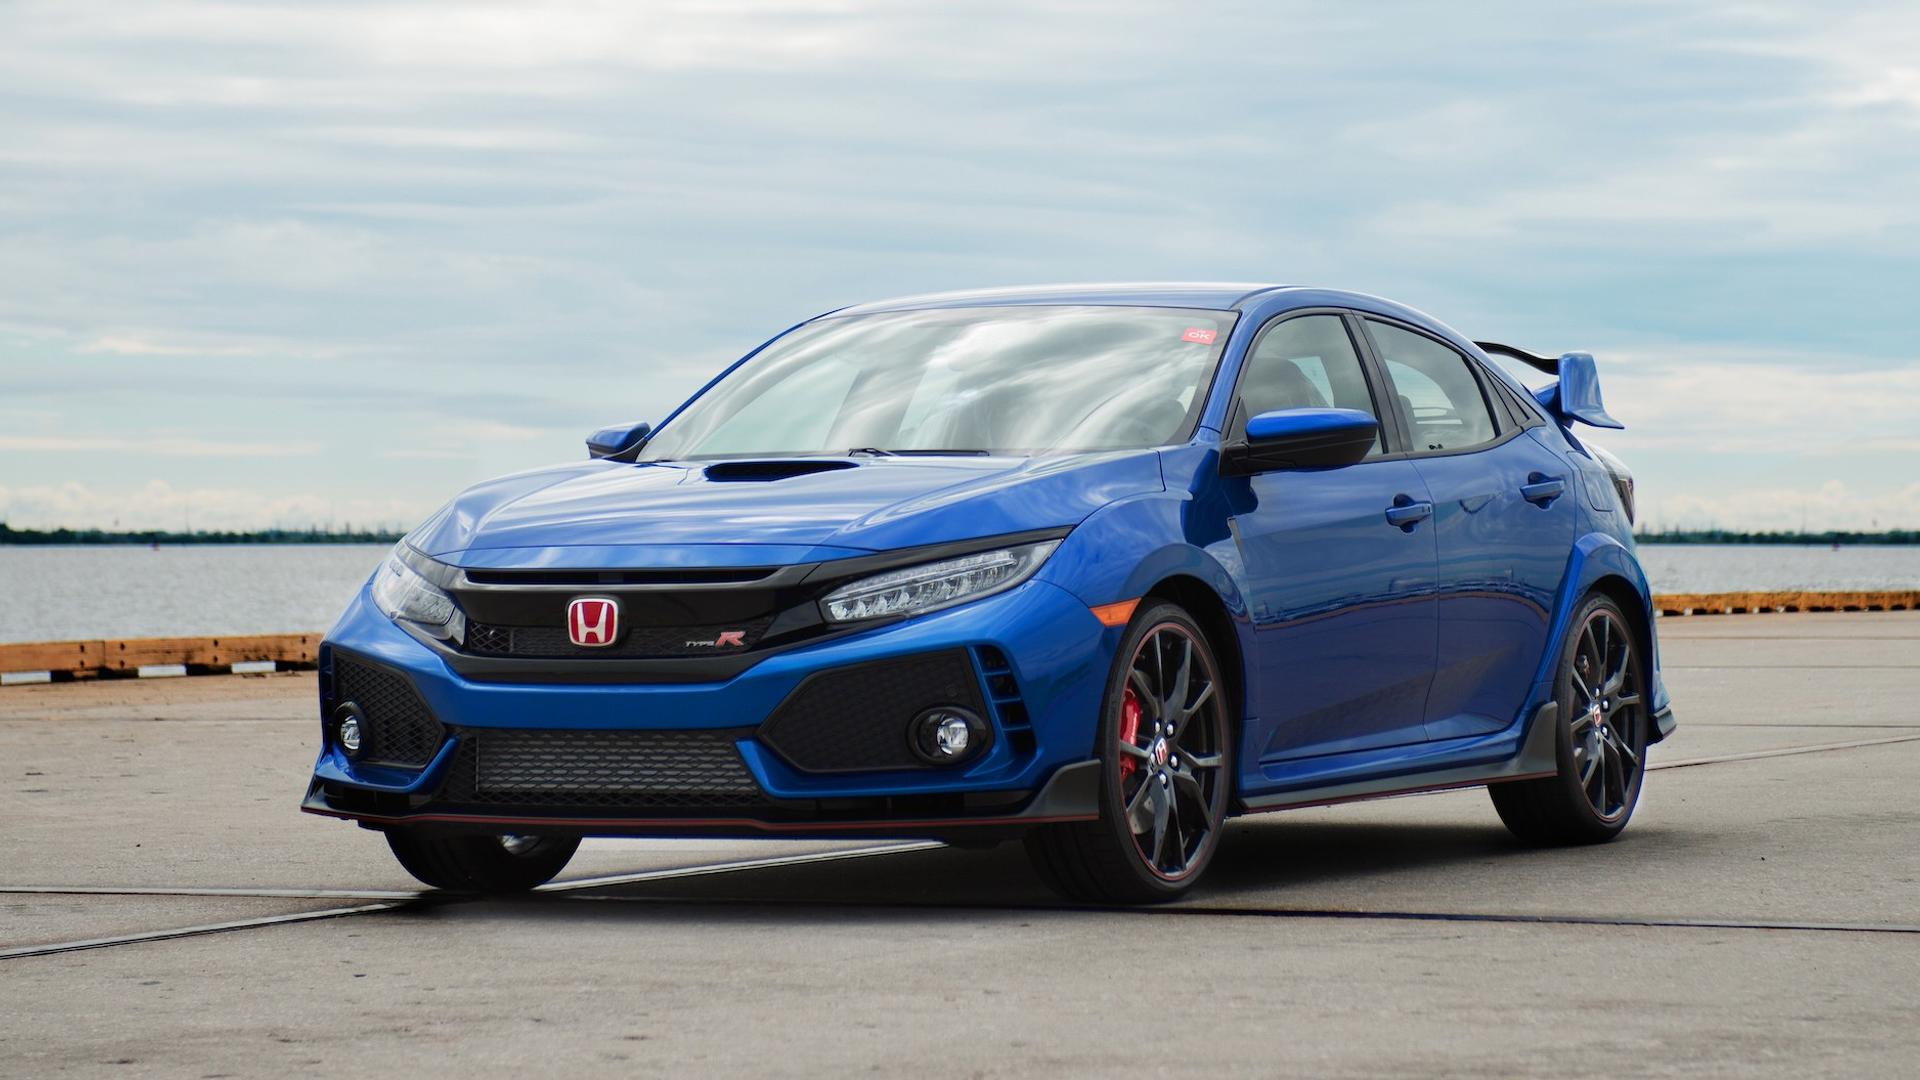 sale cars vehicle rpremieredition sales type honda rs premier for from big civic r edition